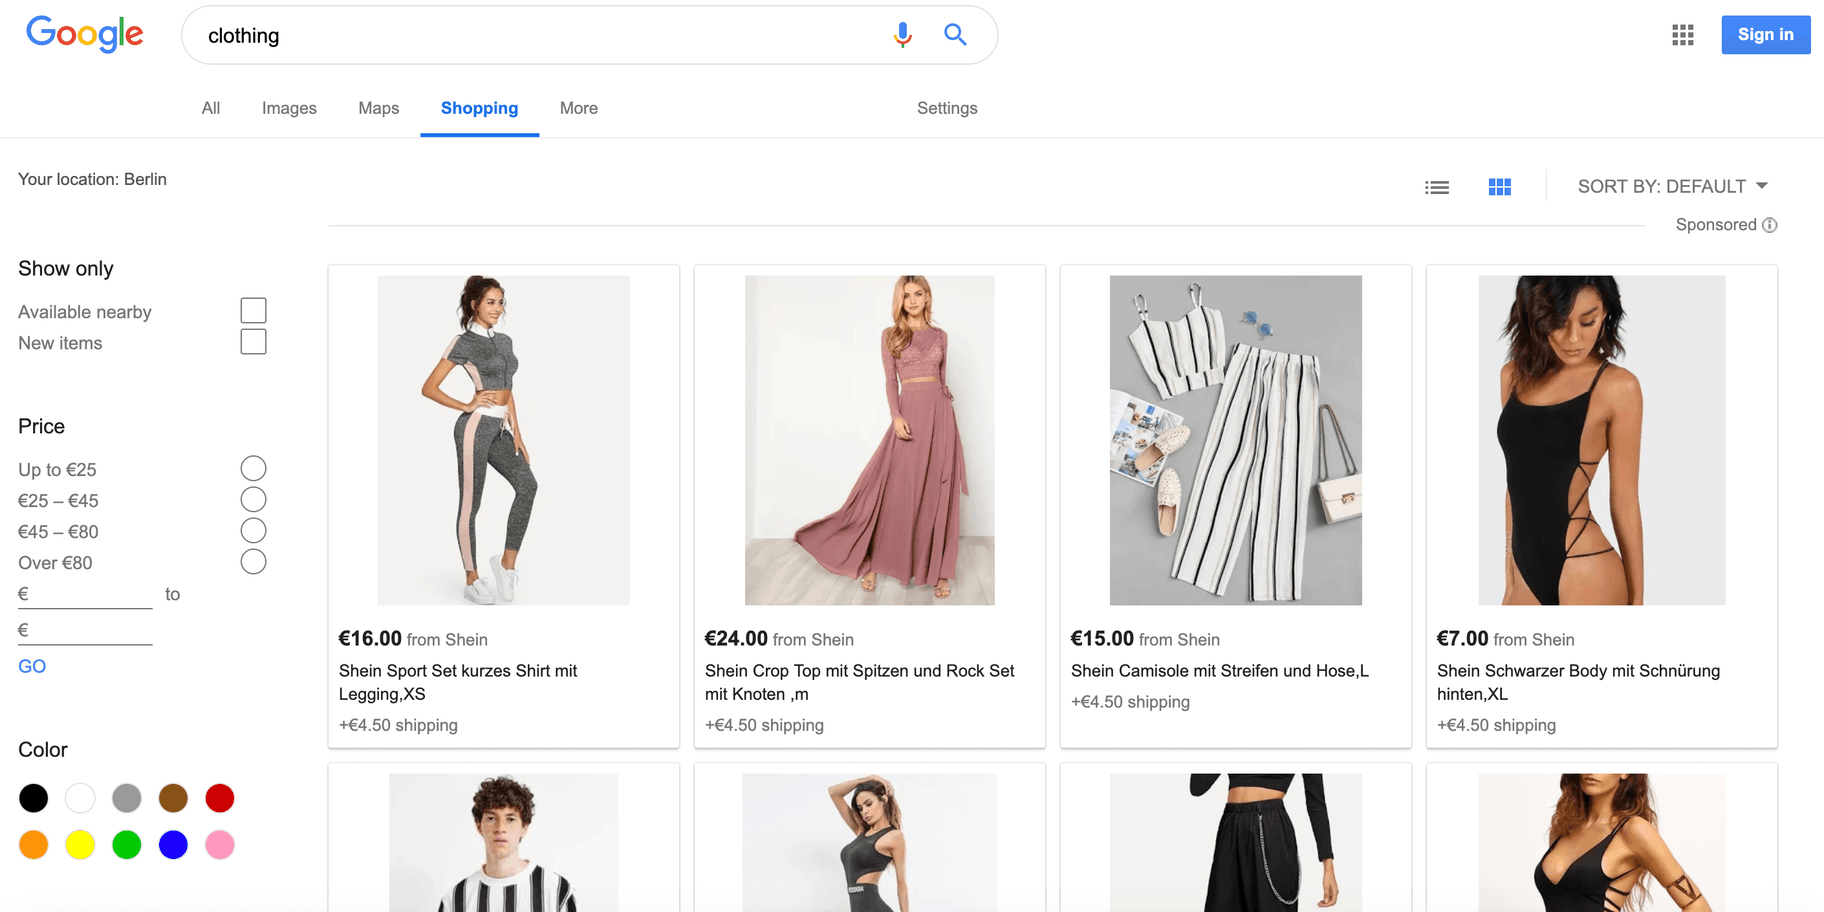 Google Shopping - Price Comparison Website